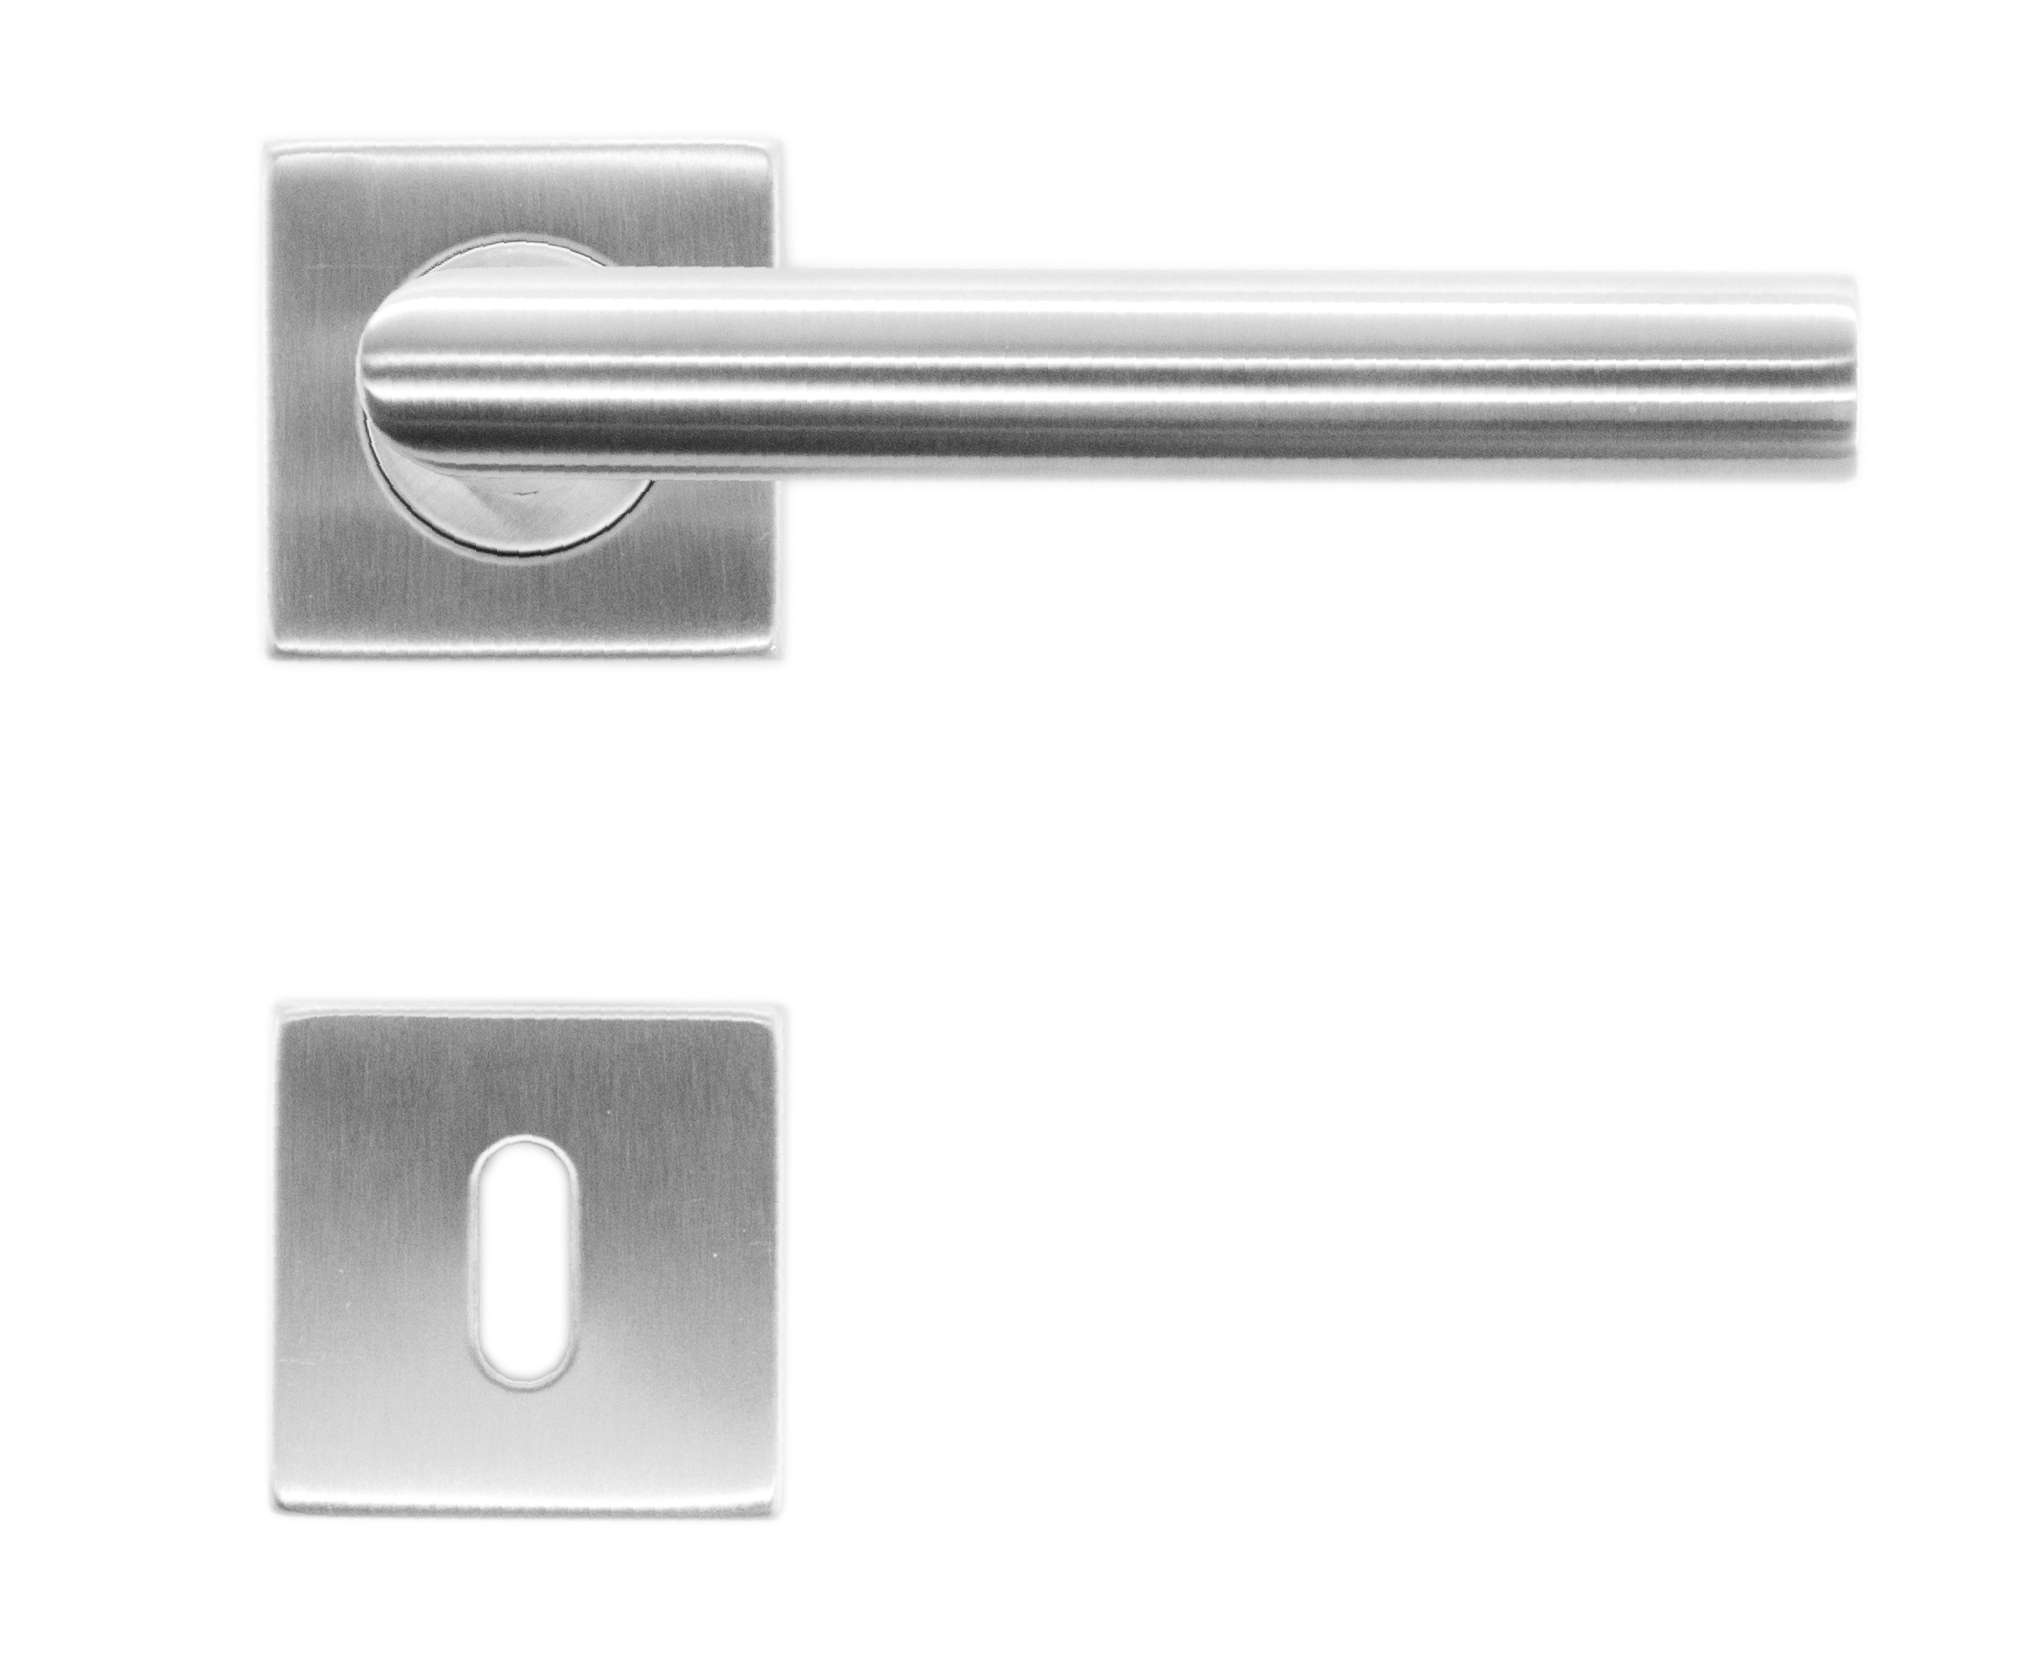 BEQUILLE SQUARE I SHAPE 19MM INOX PLUS R+E